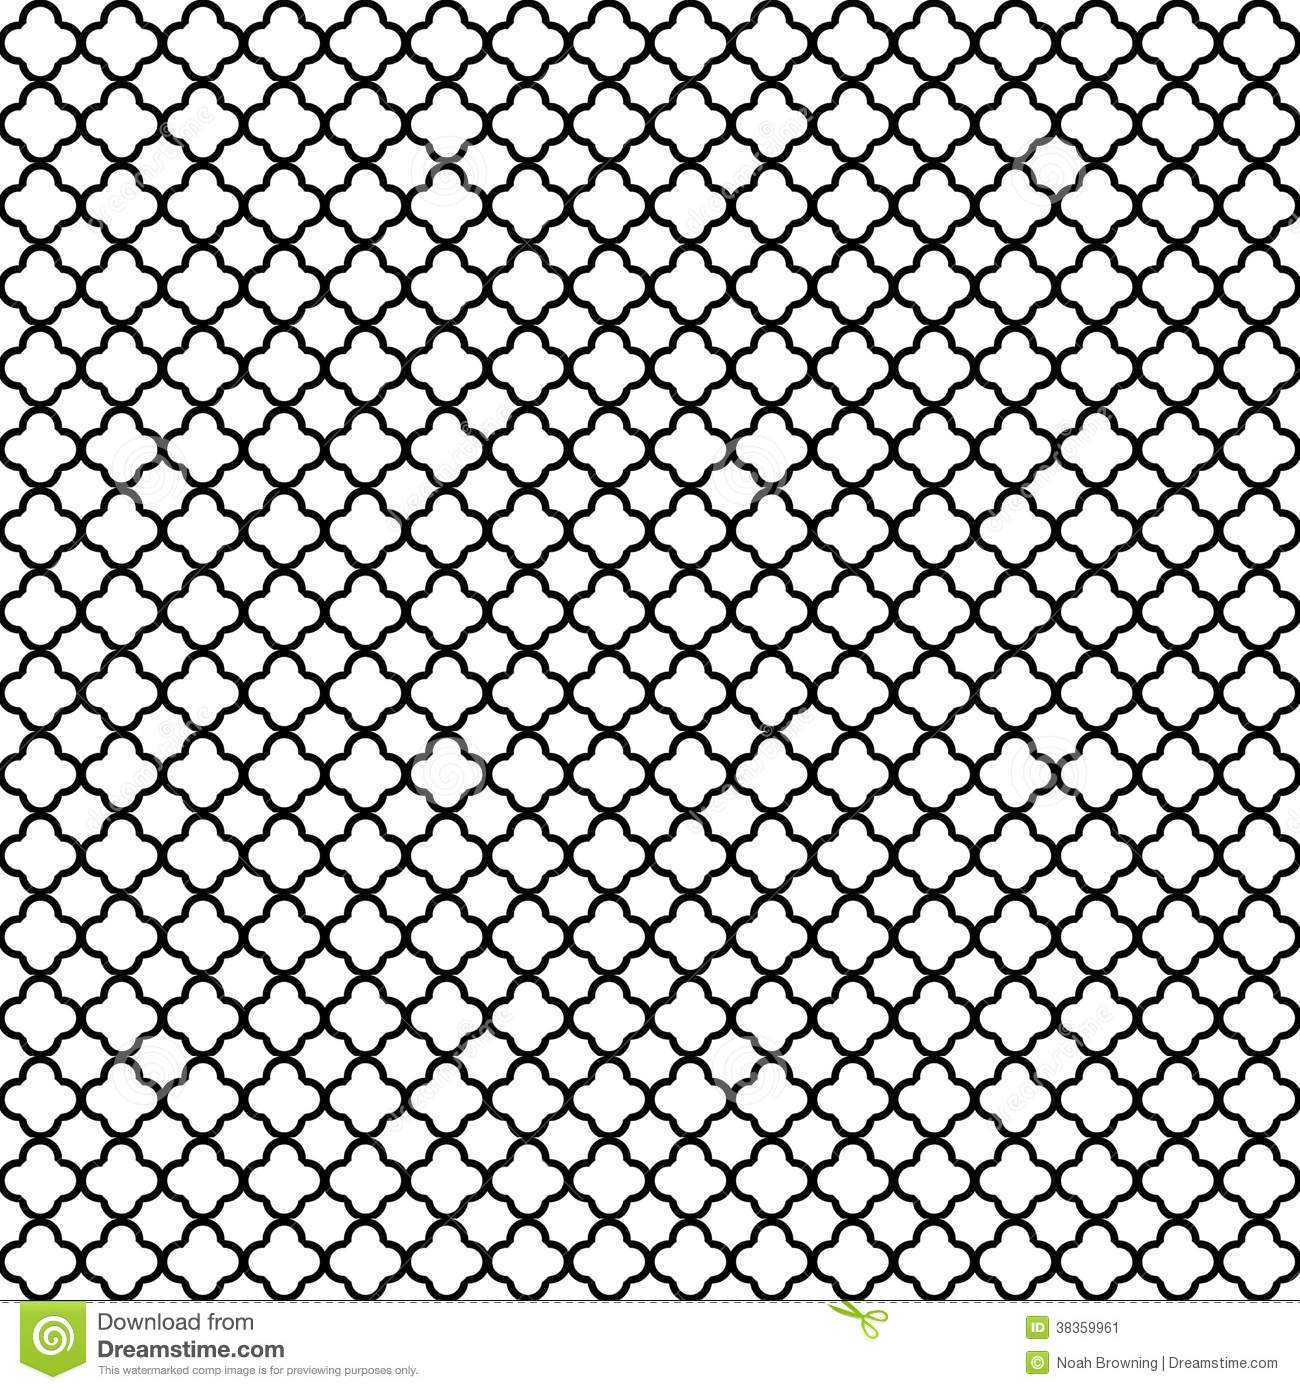 Black quatrefoil pattern stock illustration Image of